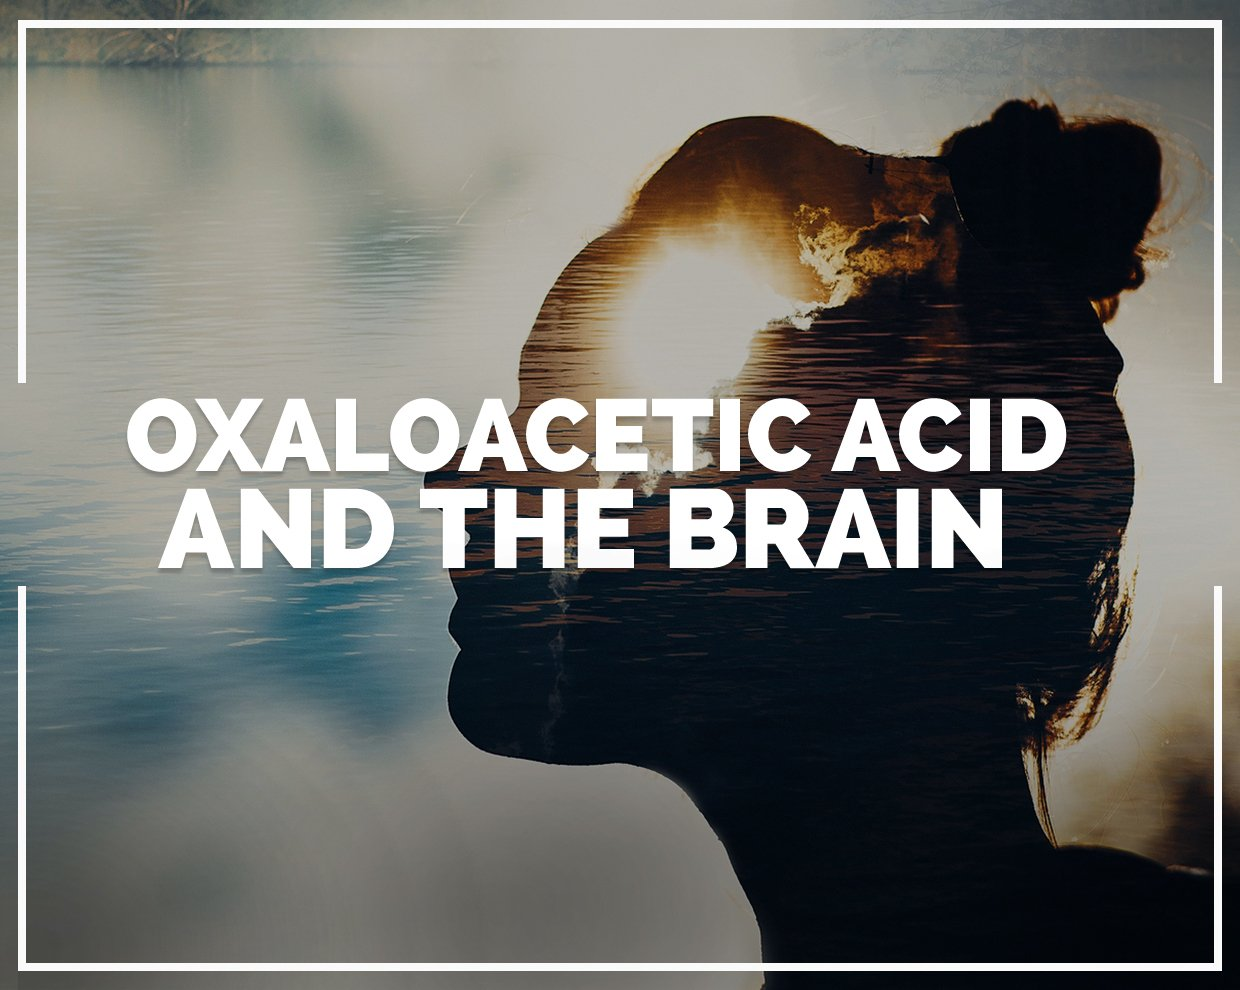 Oxaloacetic acid and the brain